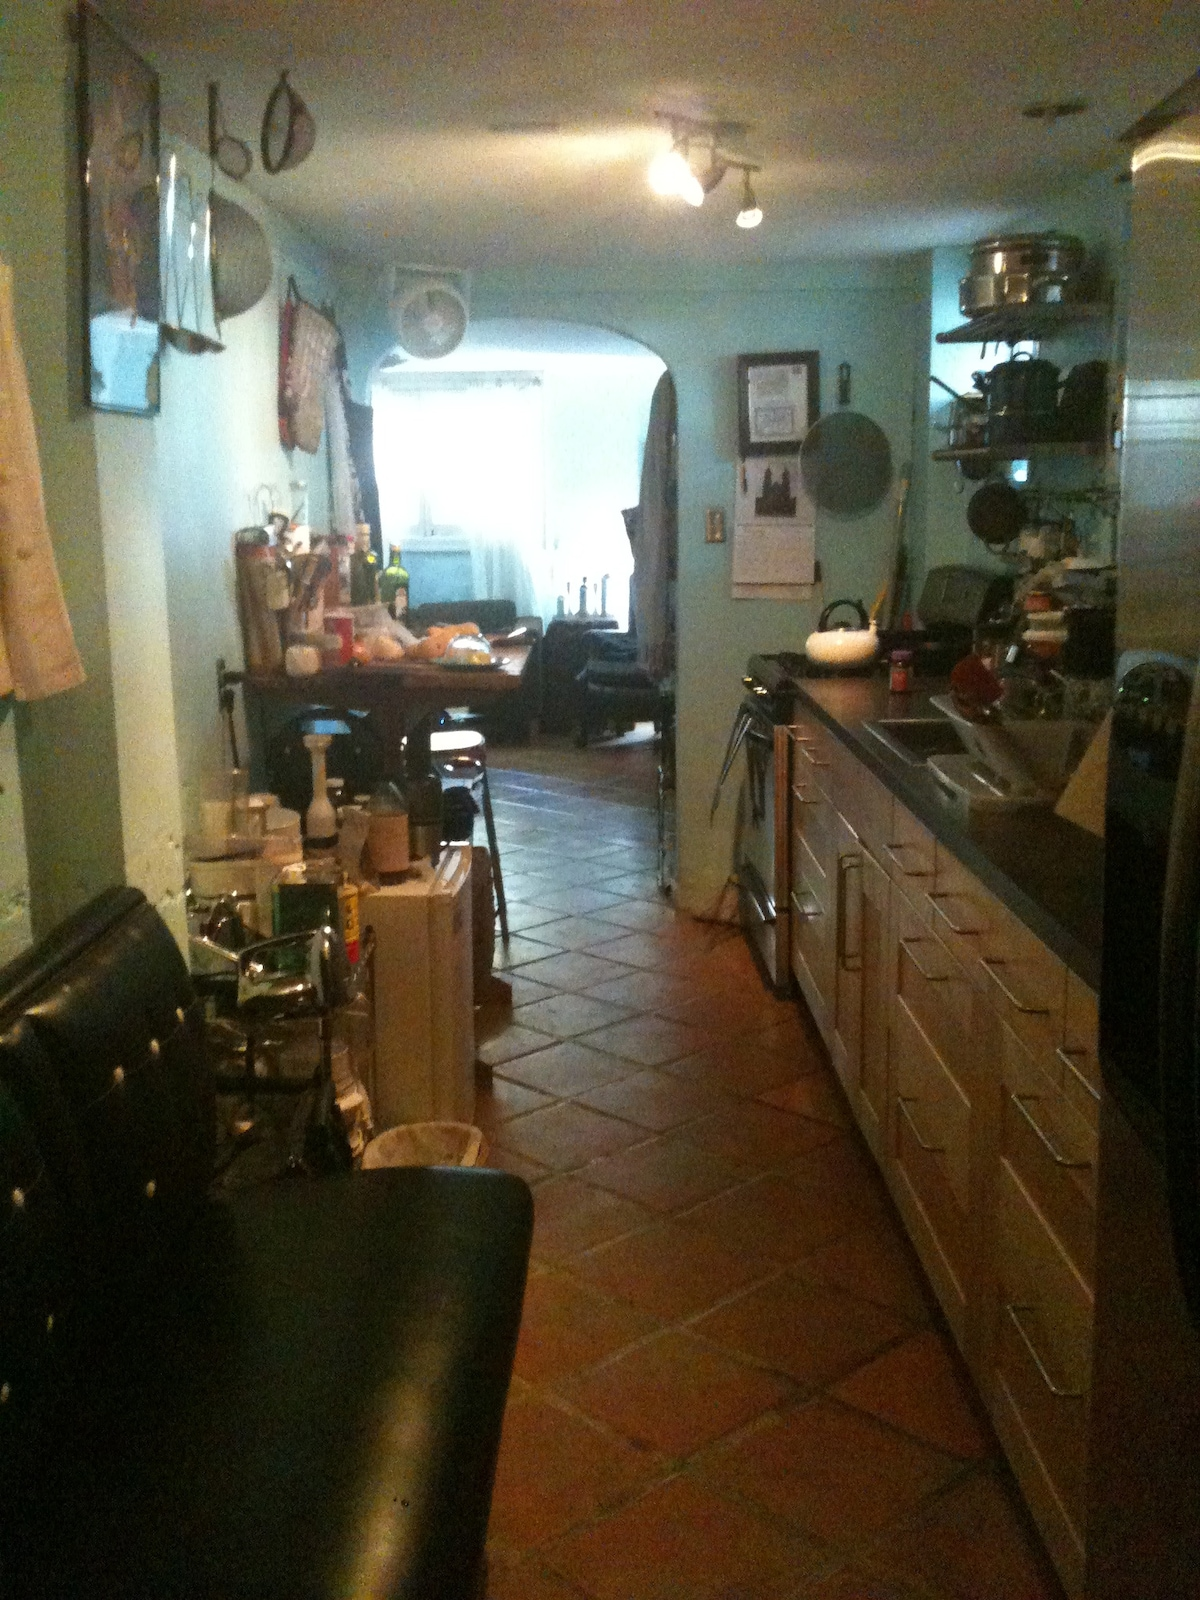 Spacious well stocked galley kitchen